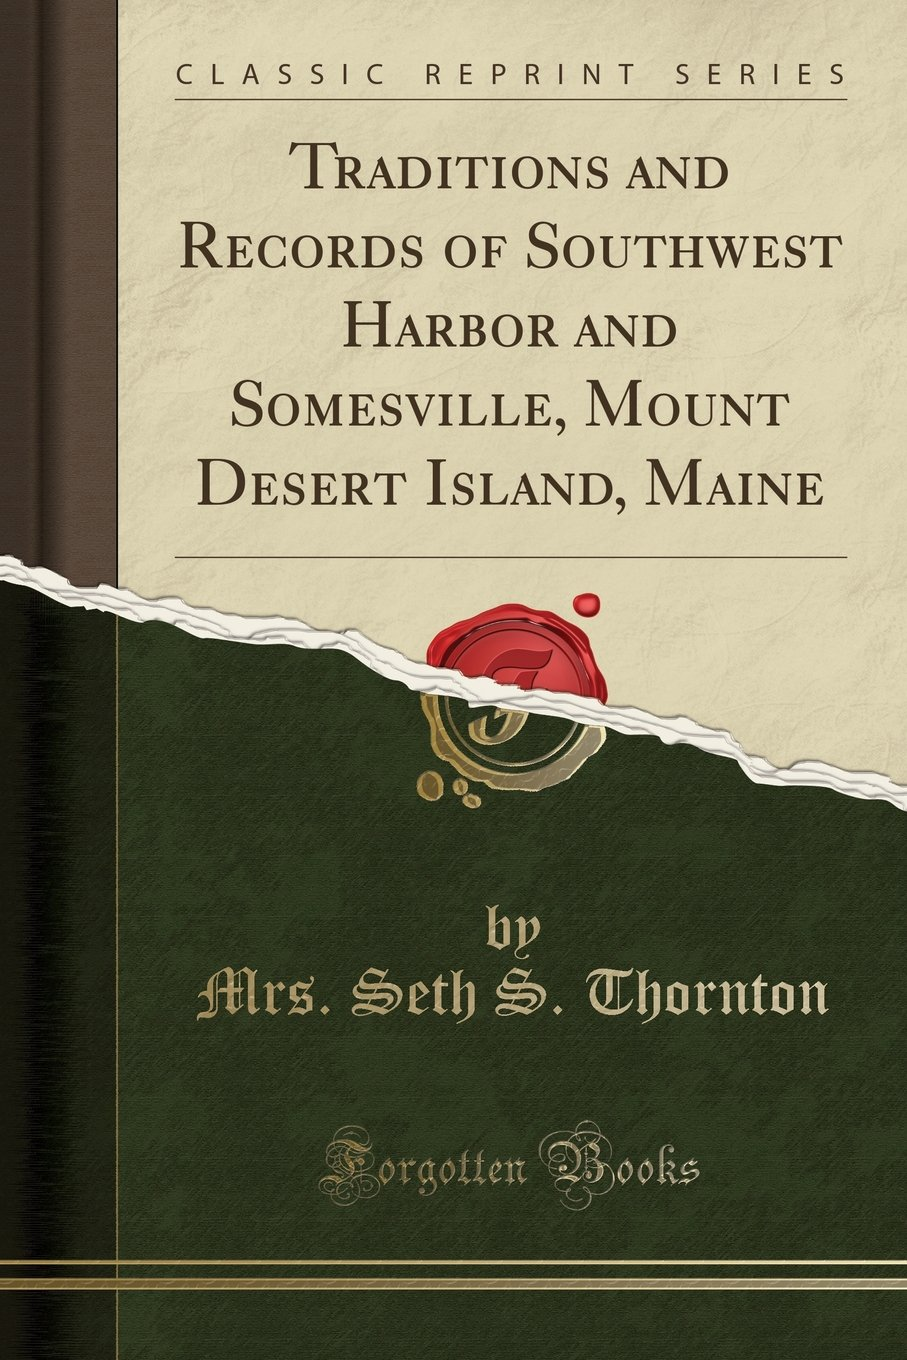 Traditions and Records of Southwest Harbor and Somesville, Mount Desert Island, Maine (Classic Reprint)